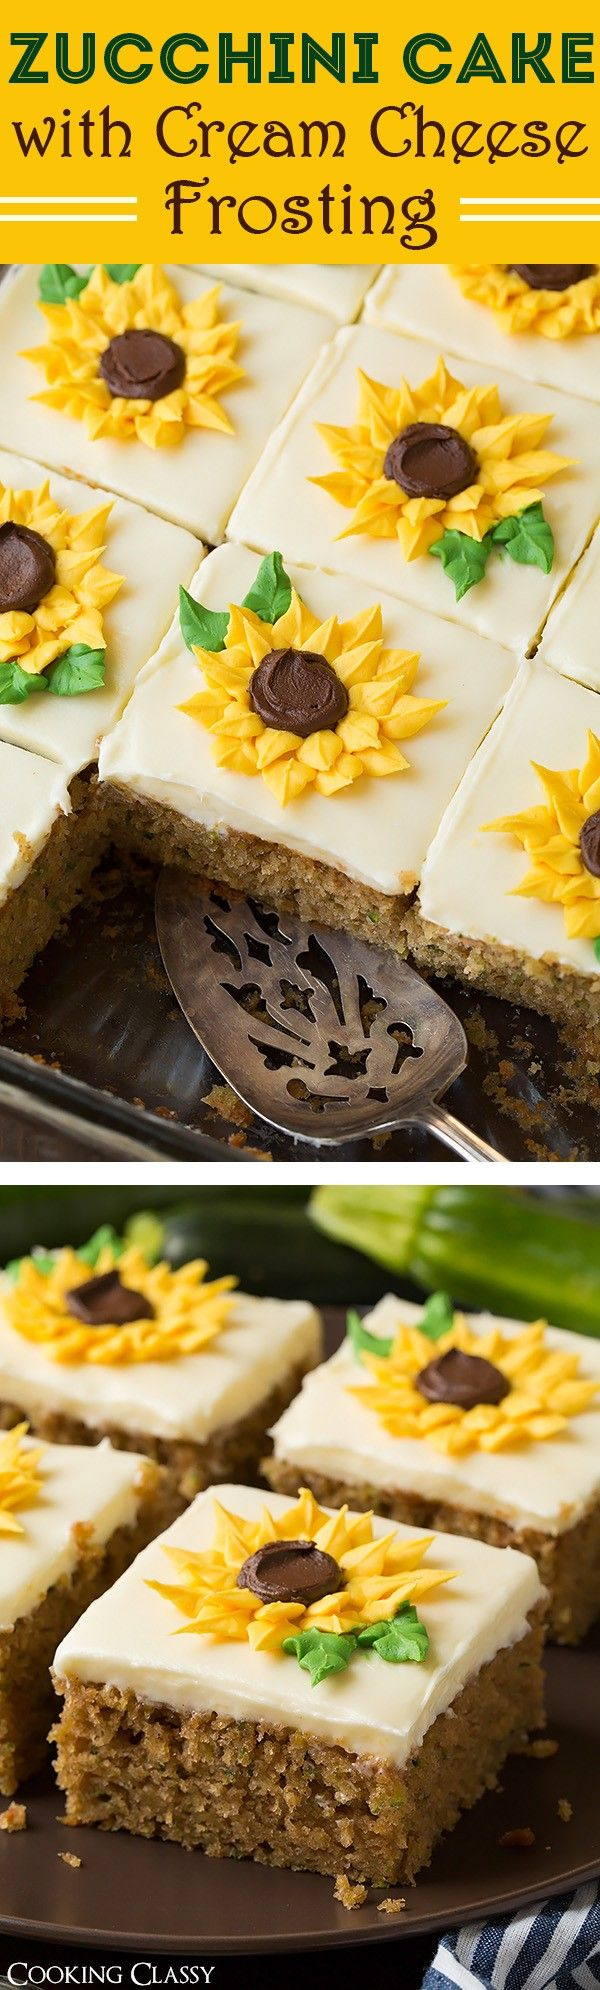 Get the recipe Zucchini Cake with Cream Cheese Frosting @recipes_to_go